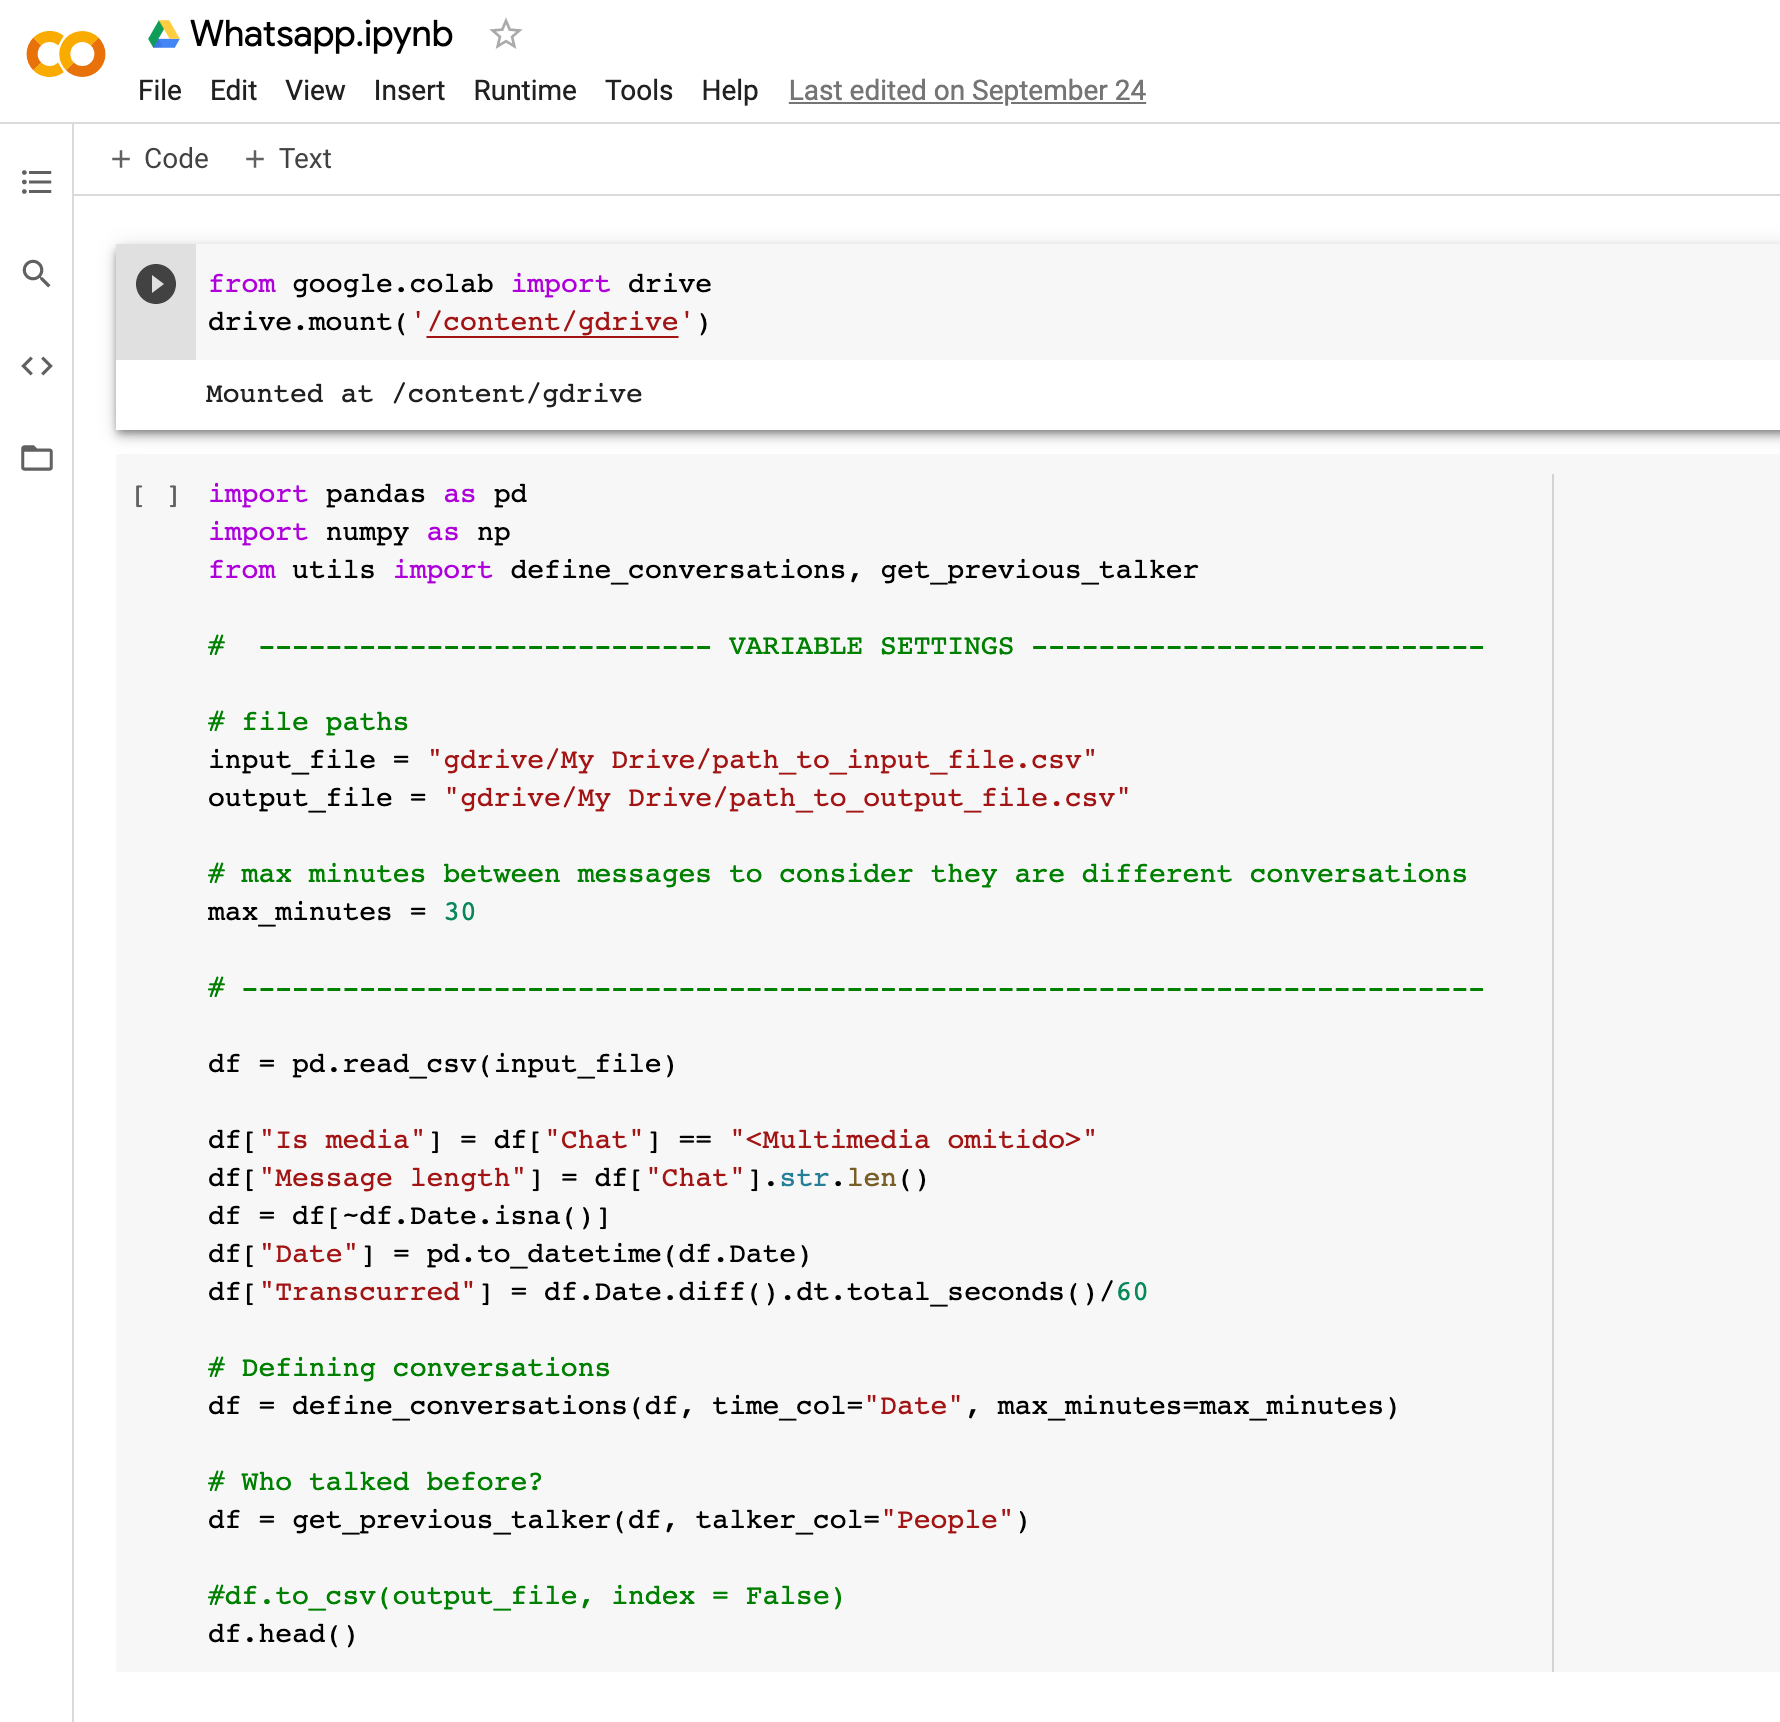 A screenshot of our Google Collab script used to preprocess WhatsApp messages gathered on participants.